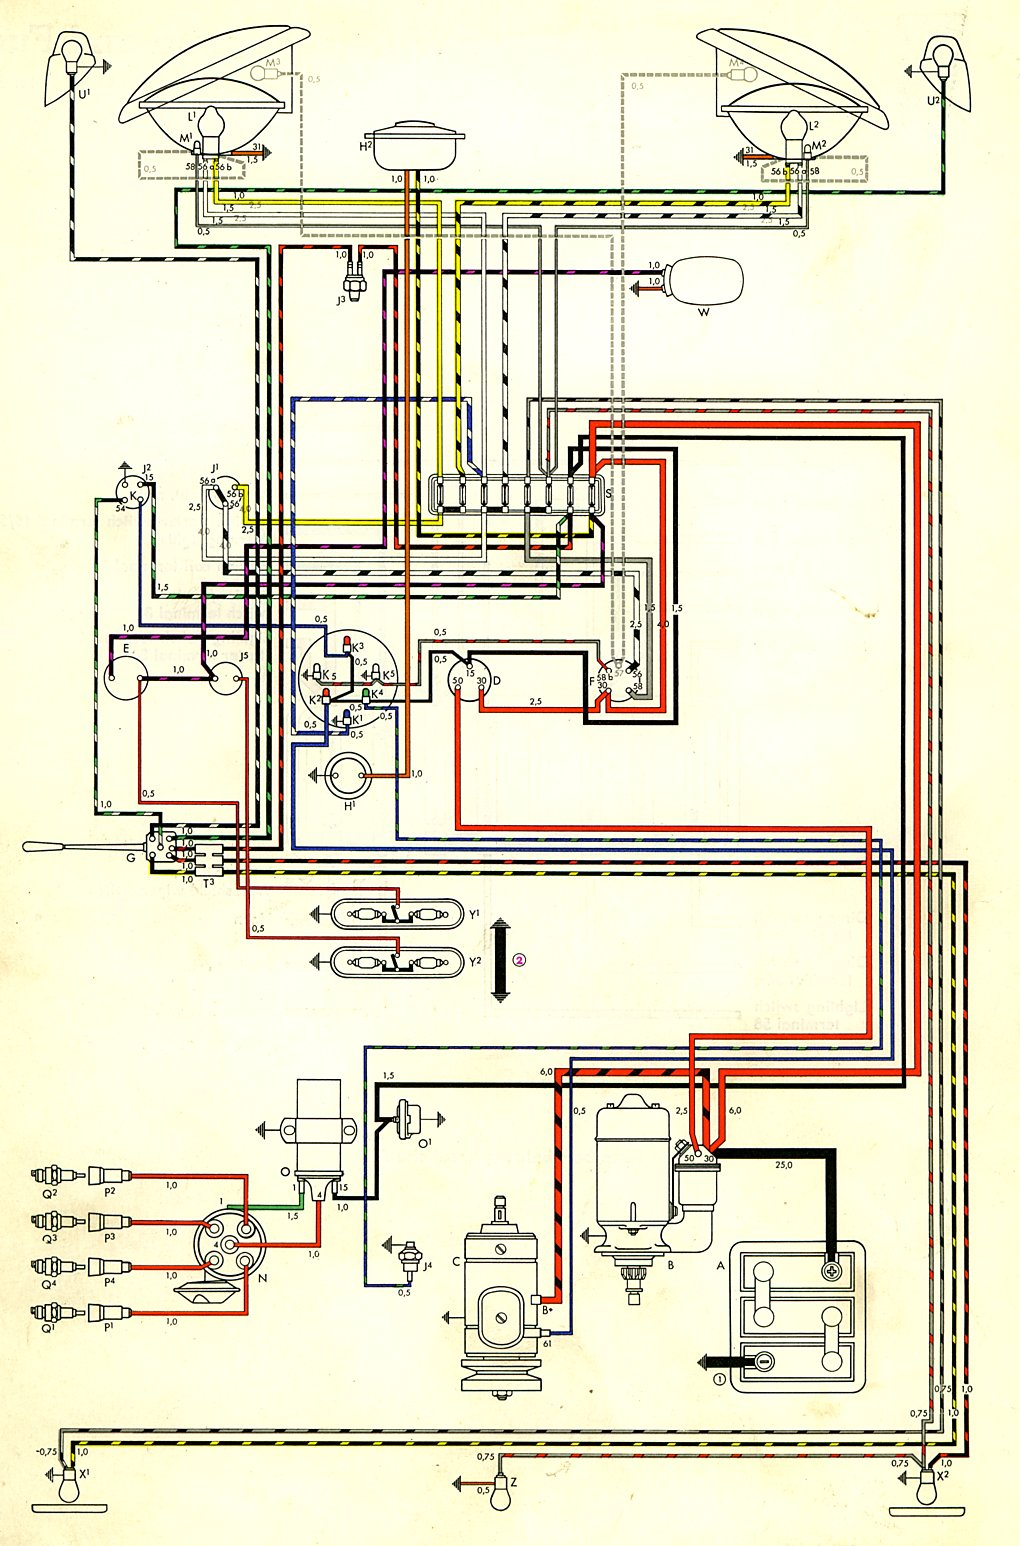 hight resolution of 1969 chevy truck ignition wiring diagram 1971 chevy truck